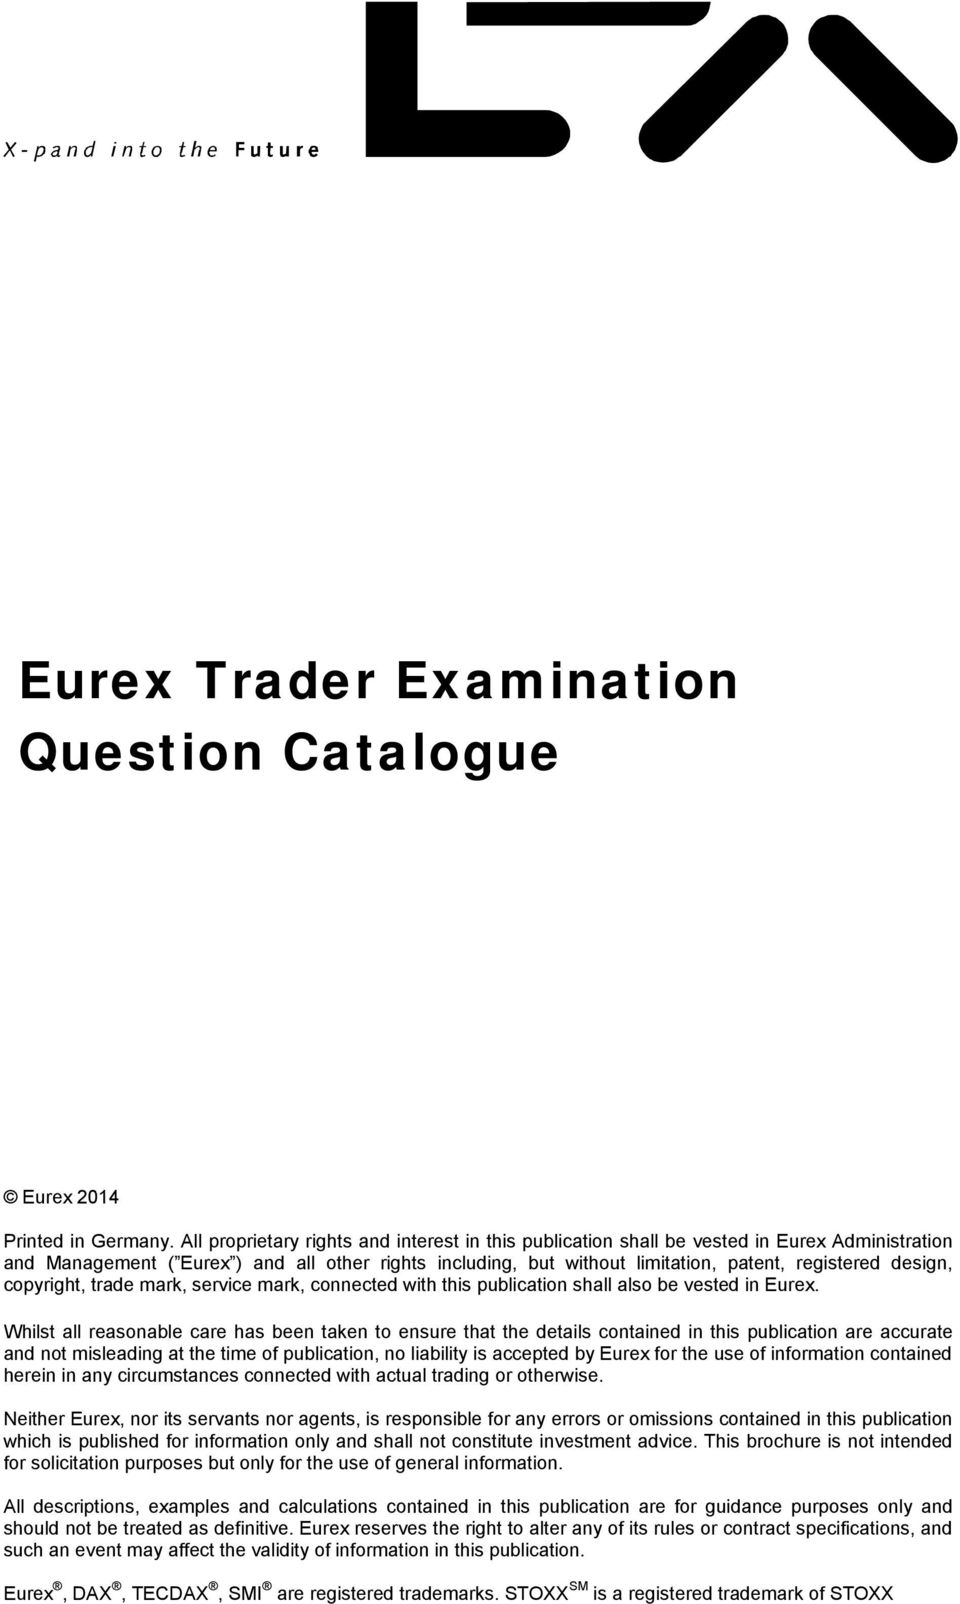 design, copyright, trade mark, service mark, connected with this publication shall also be vested in Eurex.